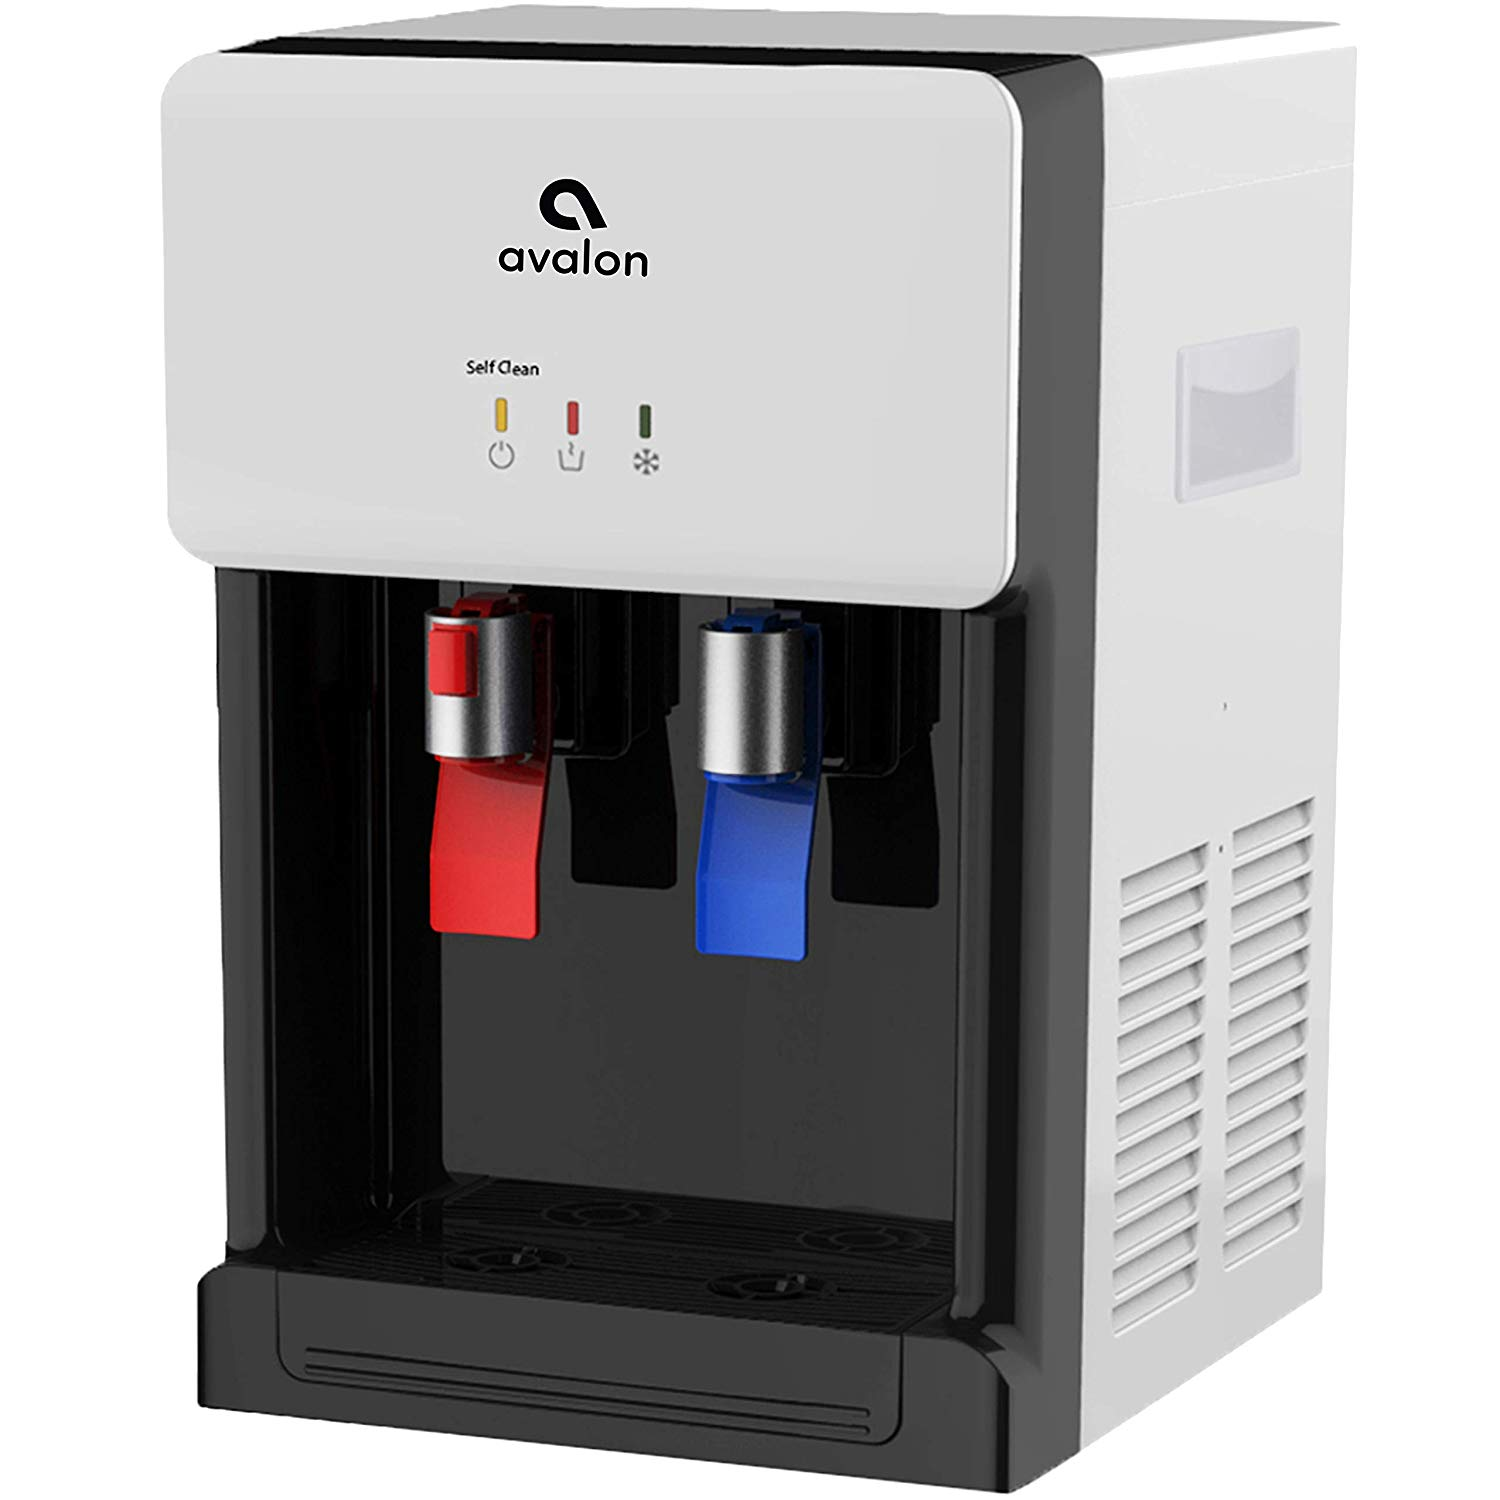 Avalon Countertop Self Cleaning Water Dispenser